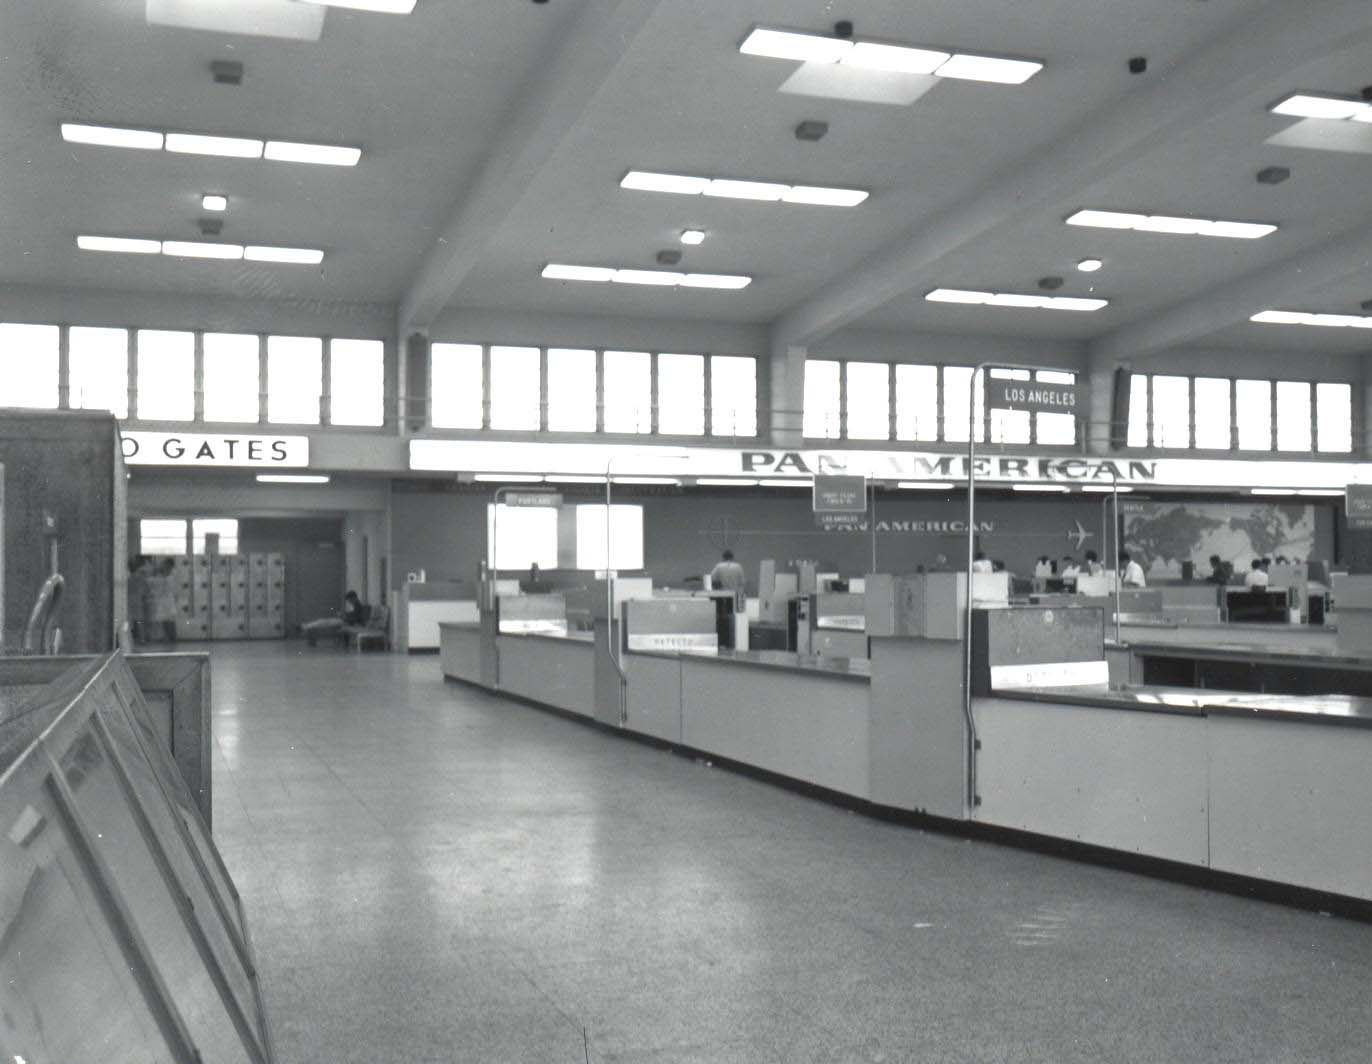 Pan American Airways Ticket Lobby, Honolulu International Airport, 1960. (Image credit: Hawaii Department of Transportation, Airports Division) (CLICK TO ENLARGE)